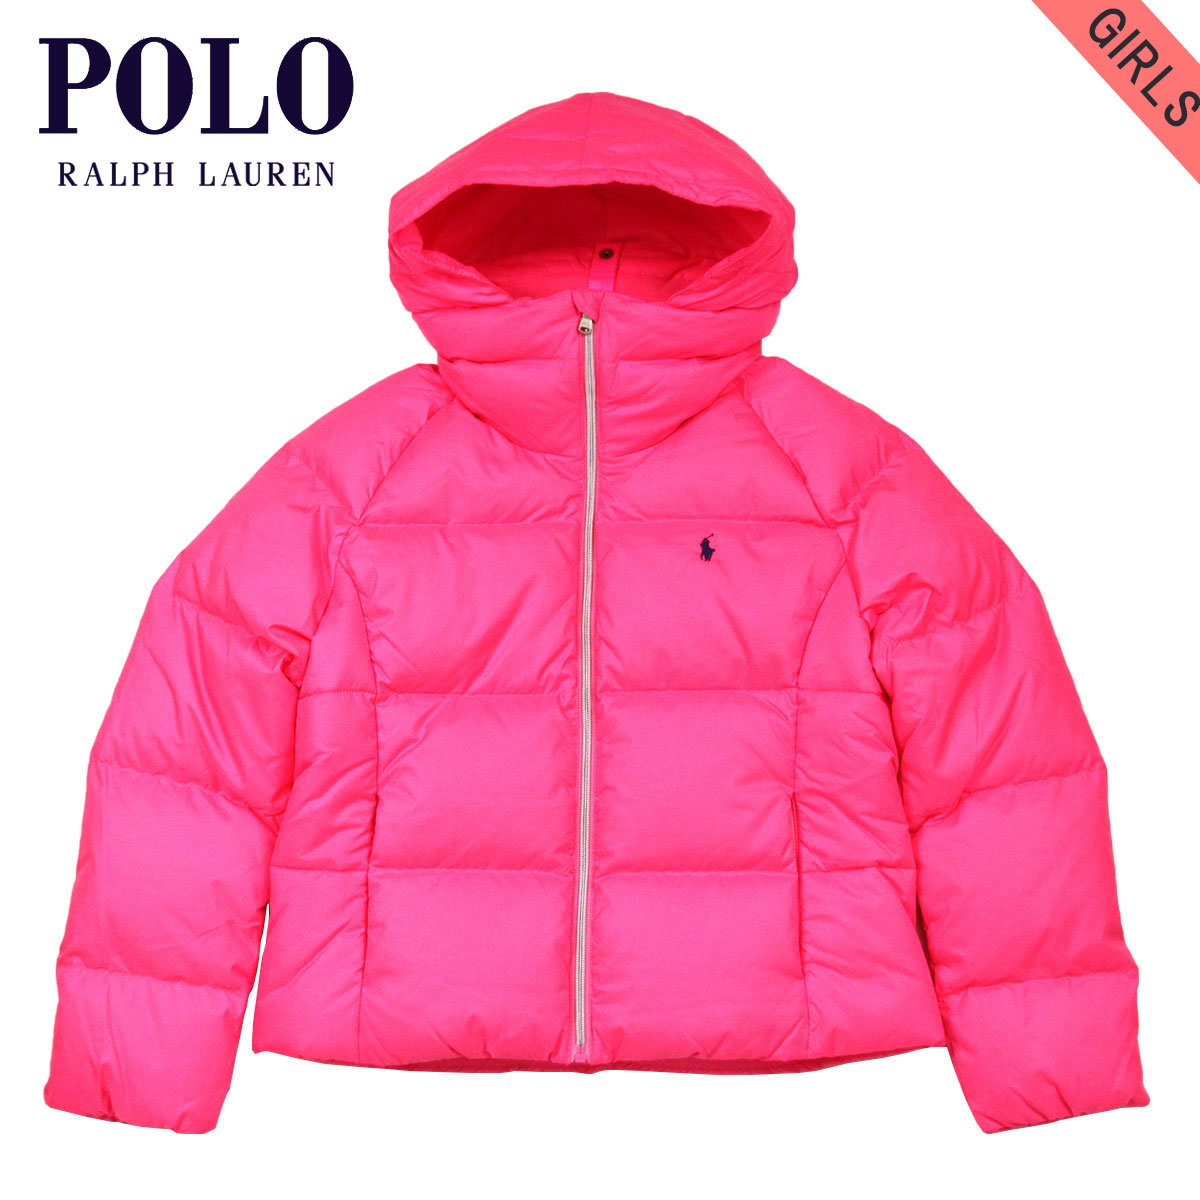 30%OFFセール 【販売期間 1/9 09:00~1/16 09:59】 ポロ ラルフローレン キッズ POLO RALPH LAUREN CHILDREN 正規品 子供服 ガールズ ダウンジャケット QUILTED DOWN JACKET 66152466 D20S30